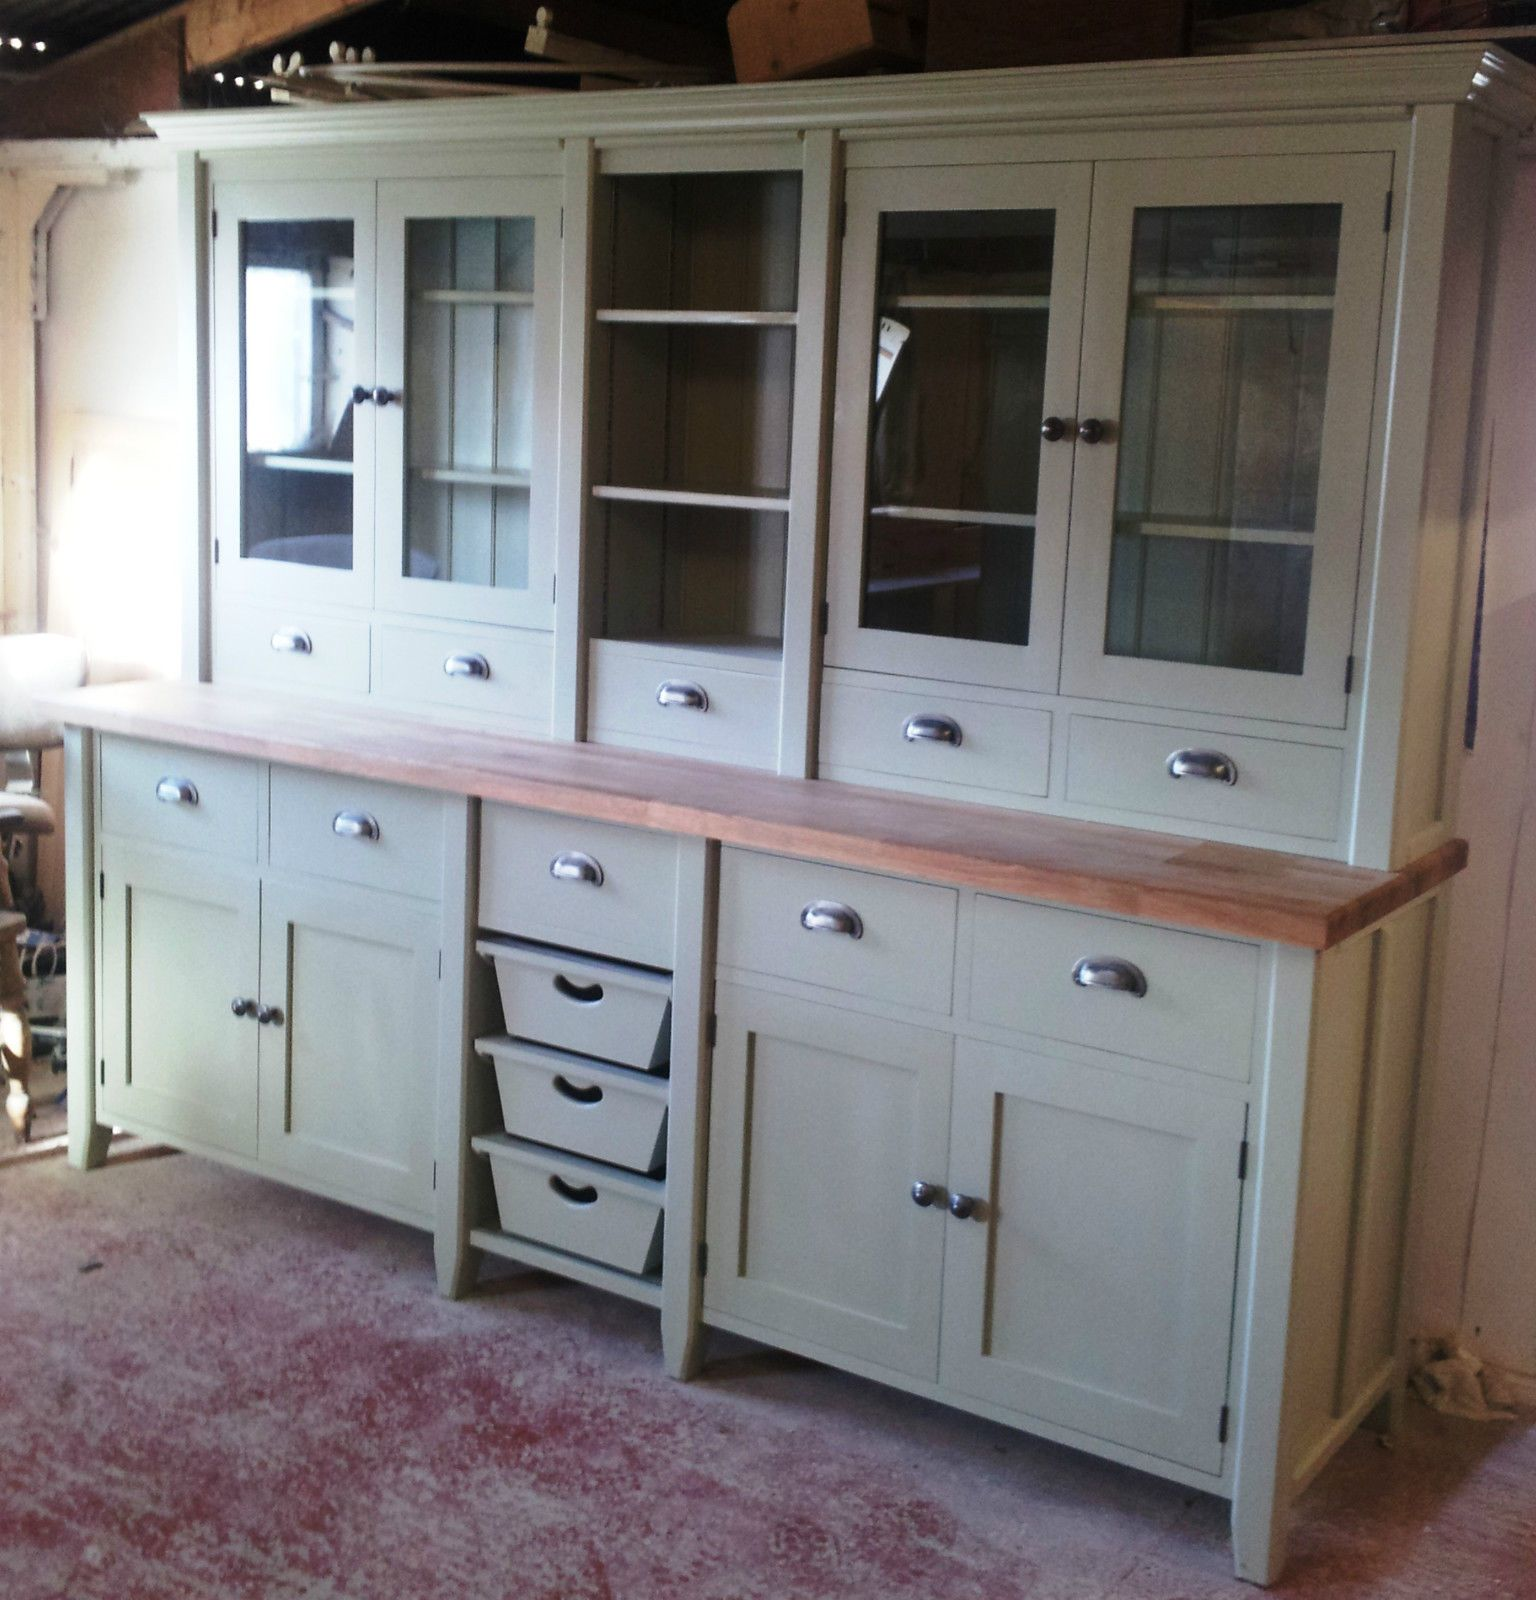 Middle - 1 drawer over 3 basket syle drawers. LH - double ...